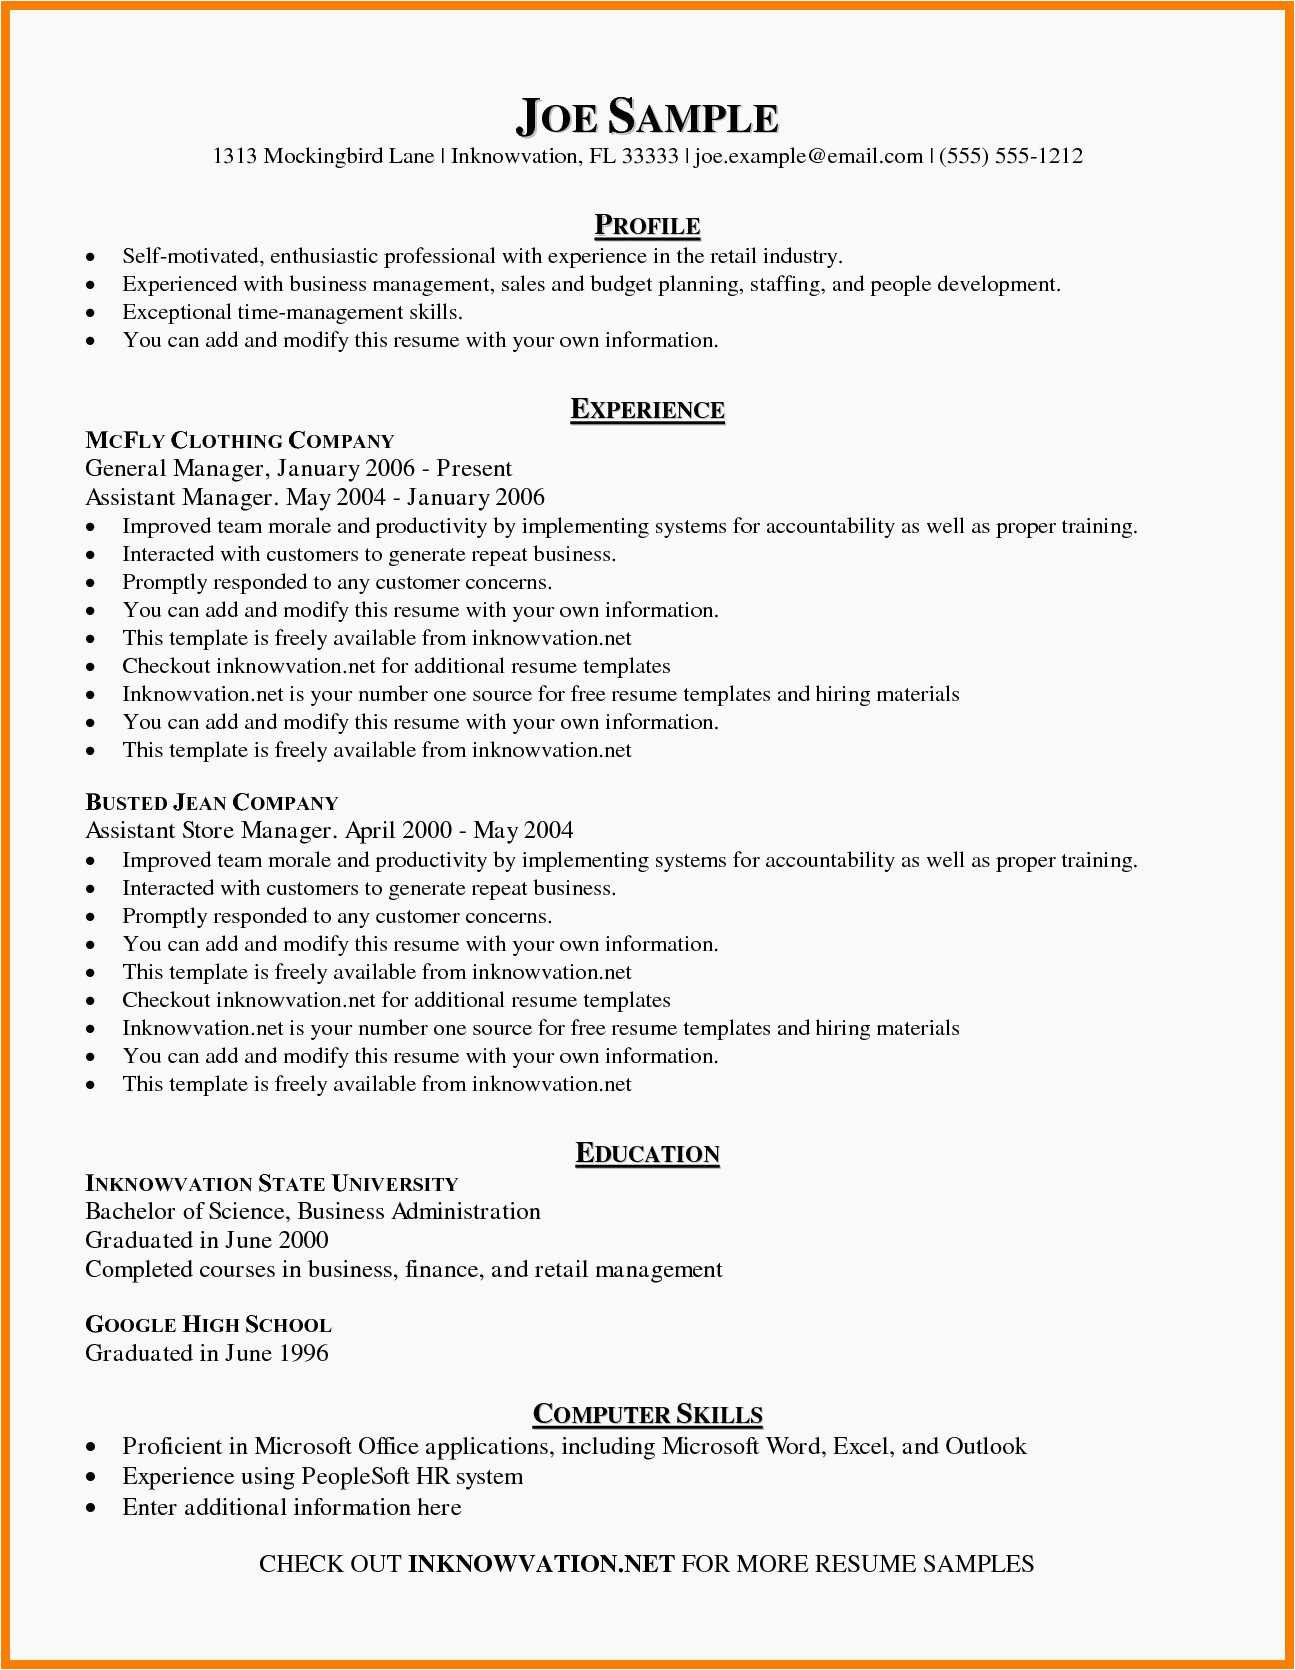 Resume Examples Office  Schedule Template Microsoft Office E Management Templates Word